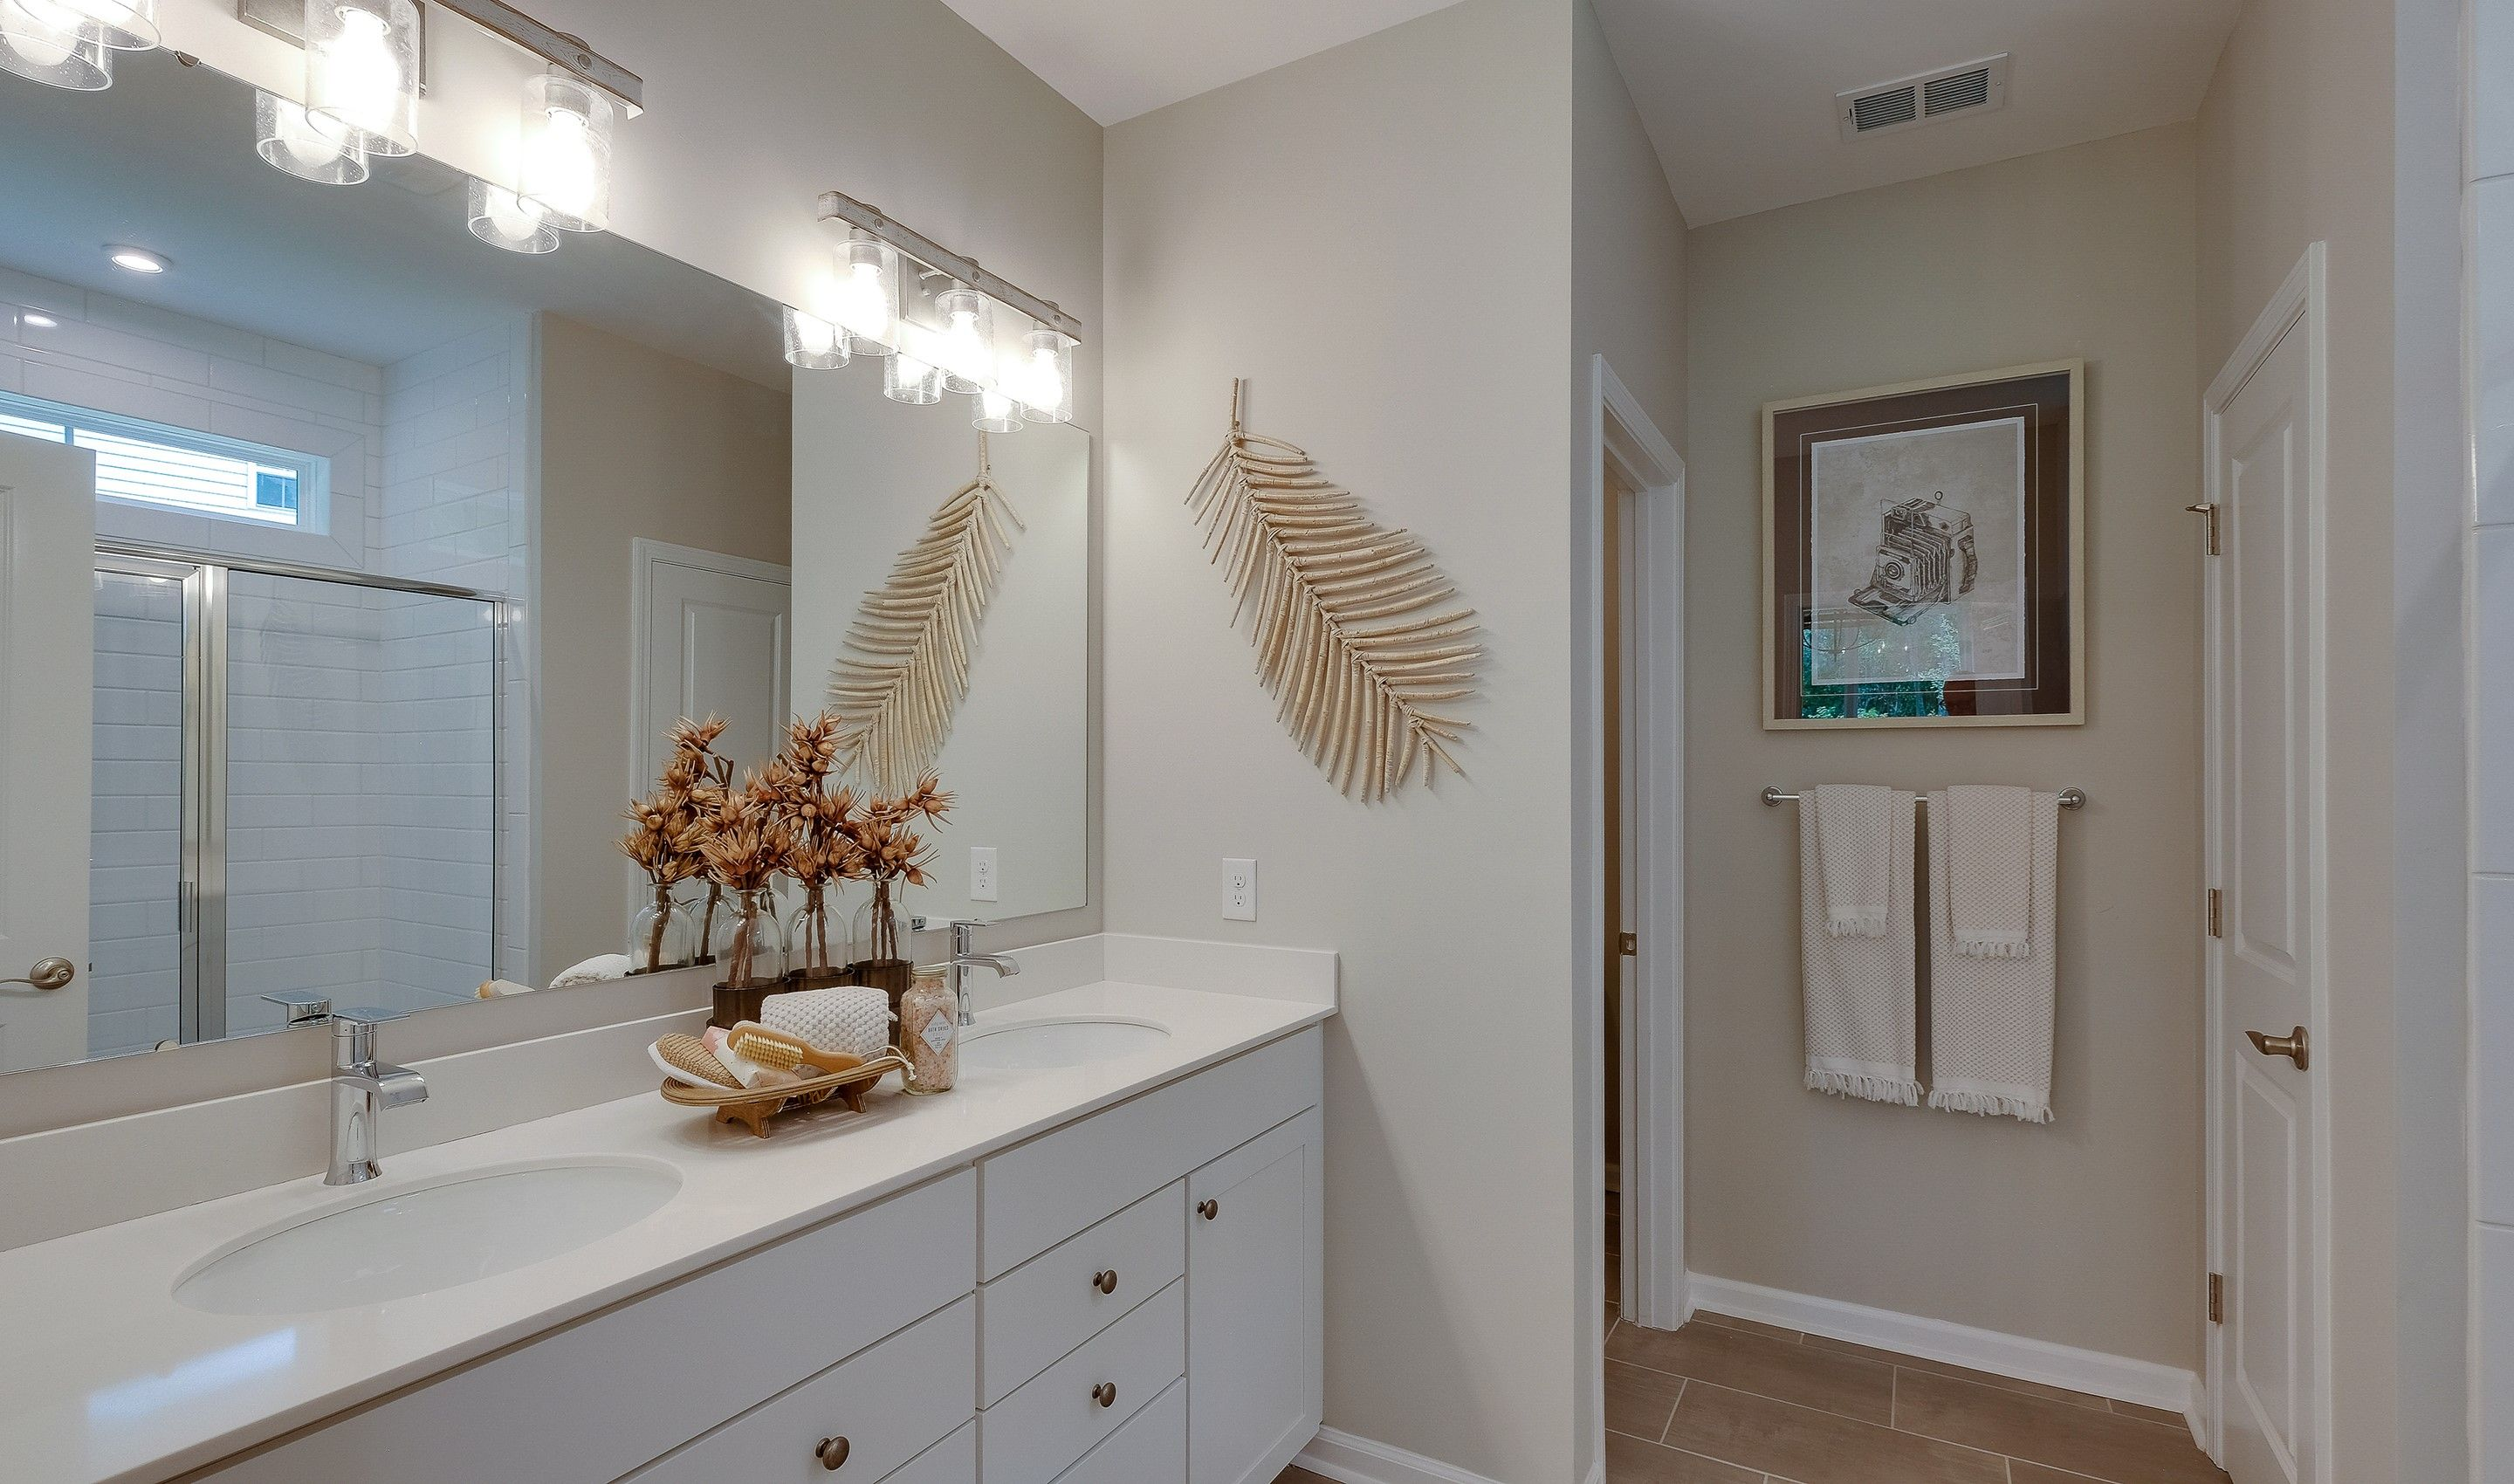 Bathroom featured in the Palmera By K. Hovnanian® Homes in Savannah, GA